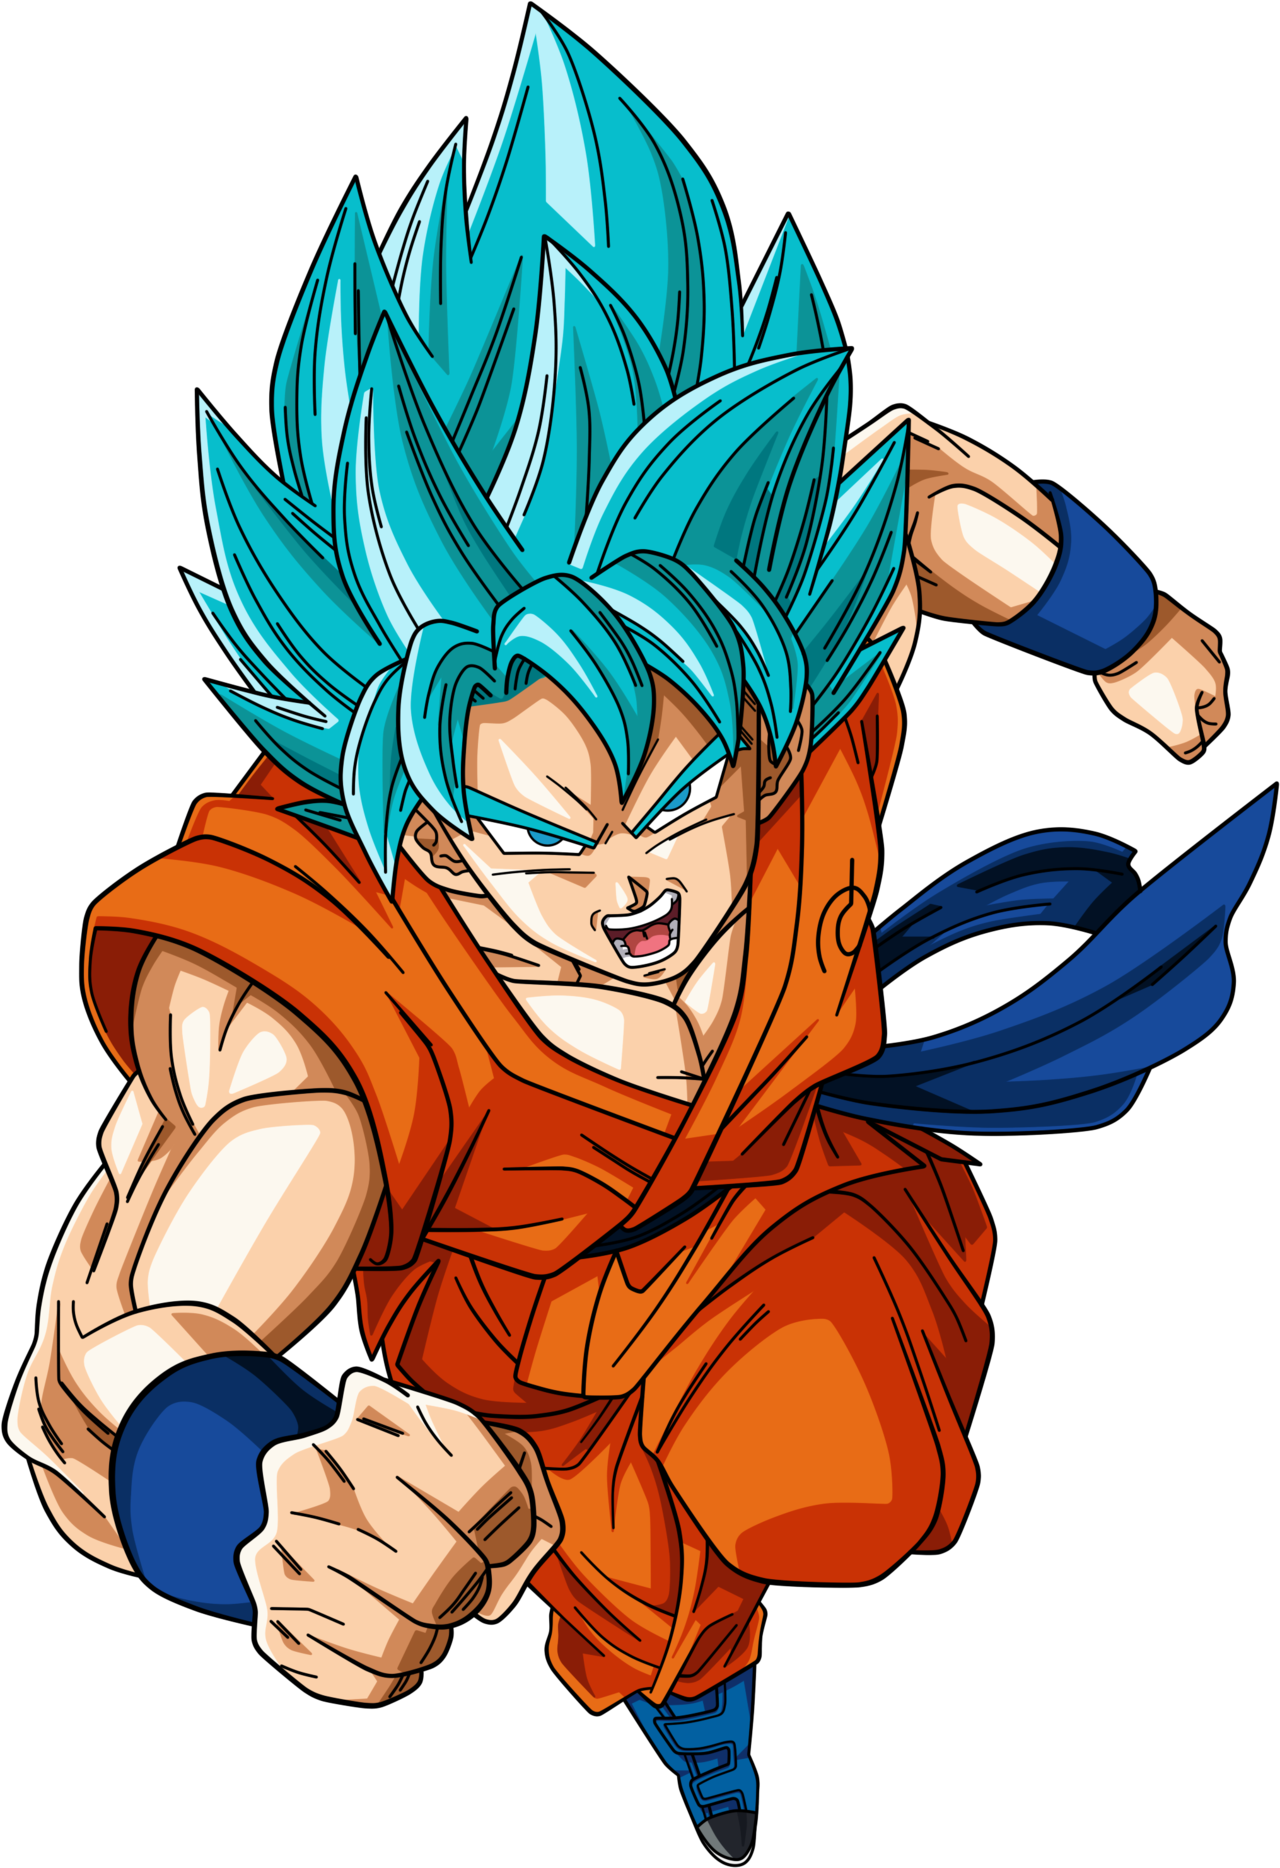 Son Goku Super Saiyan God Super Saiyan By Dark Crawler Deviantart